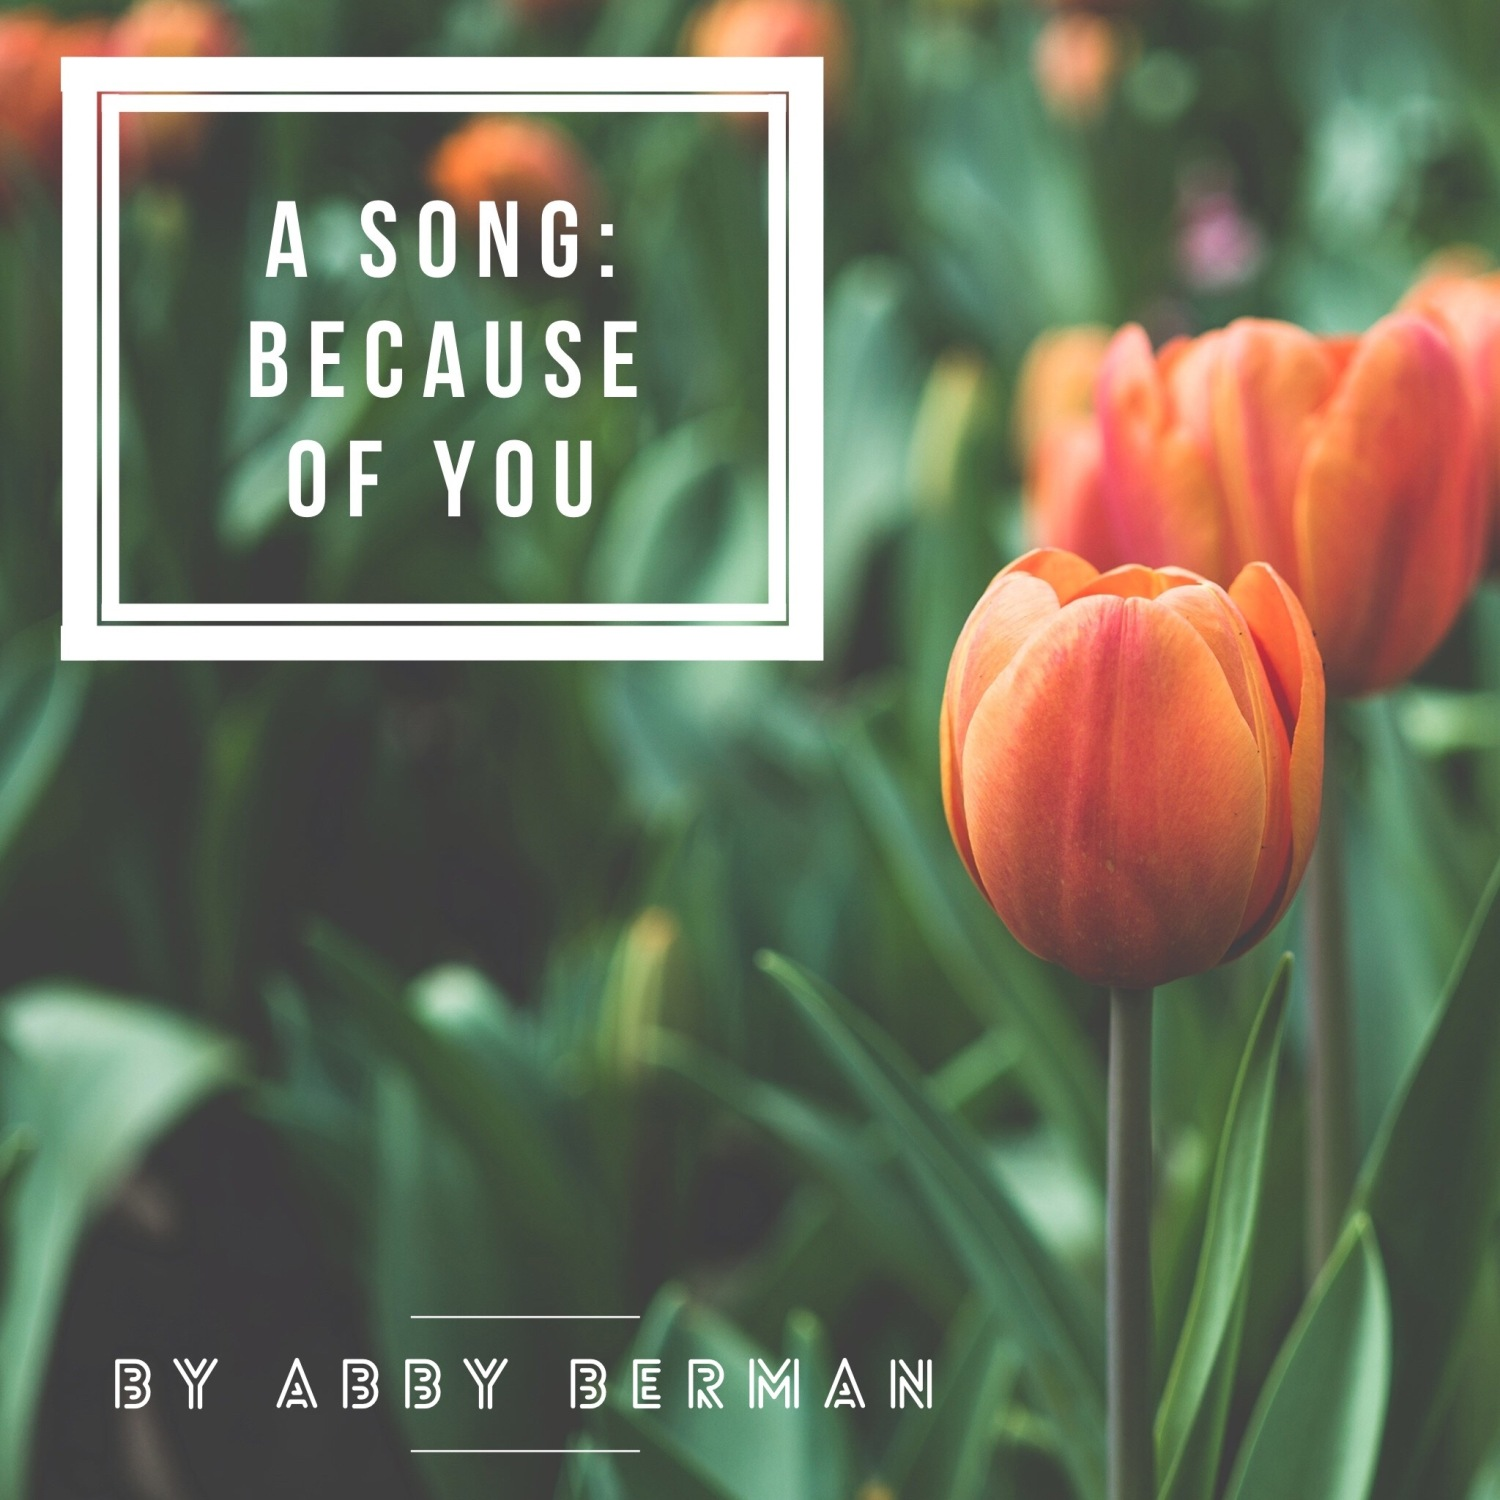 Because of You-A song by Abby Berman, www.tracingabby.com